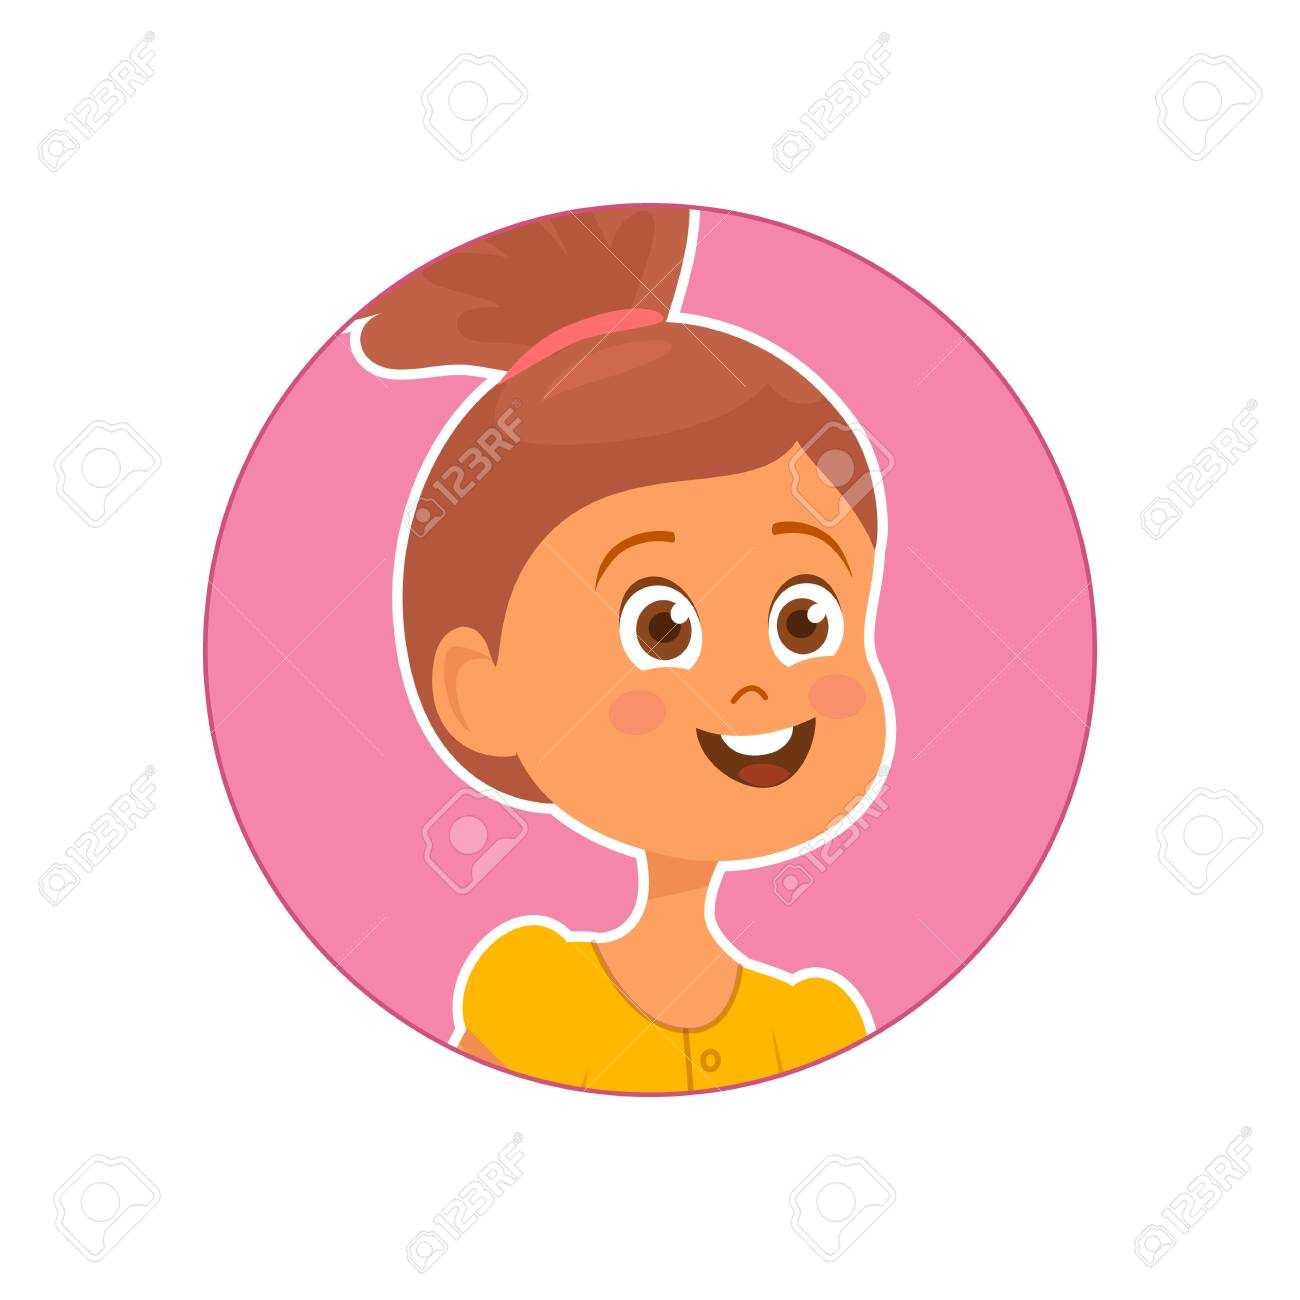 Vector illustration of cute smiling girl on pink background - 130347260